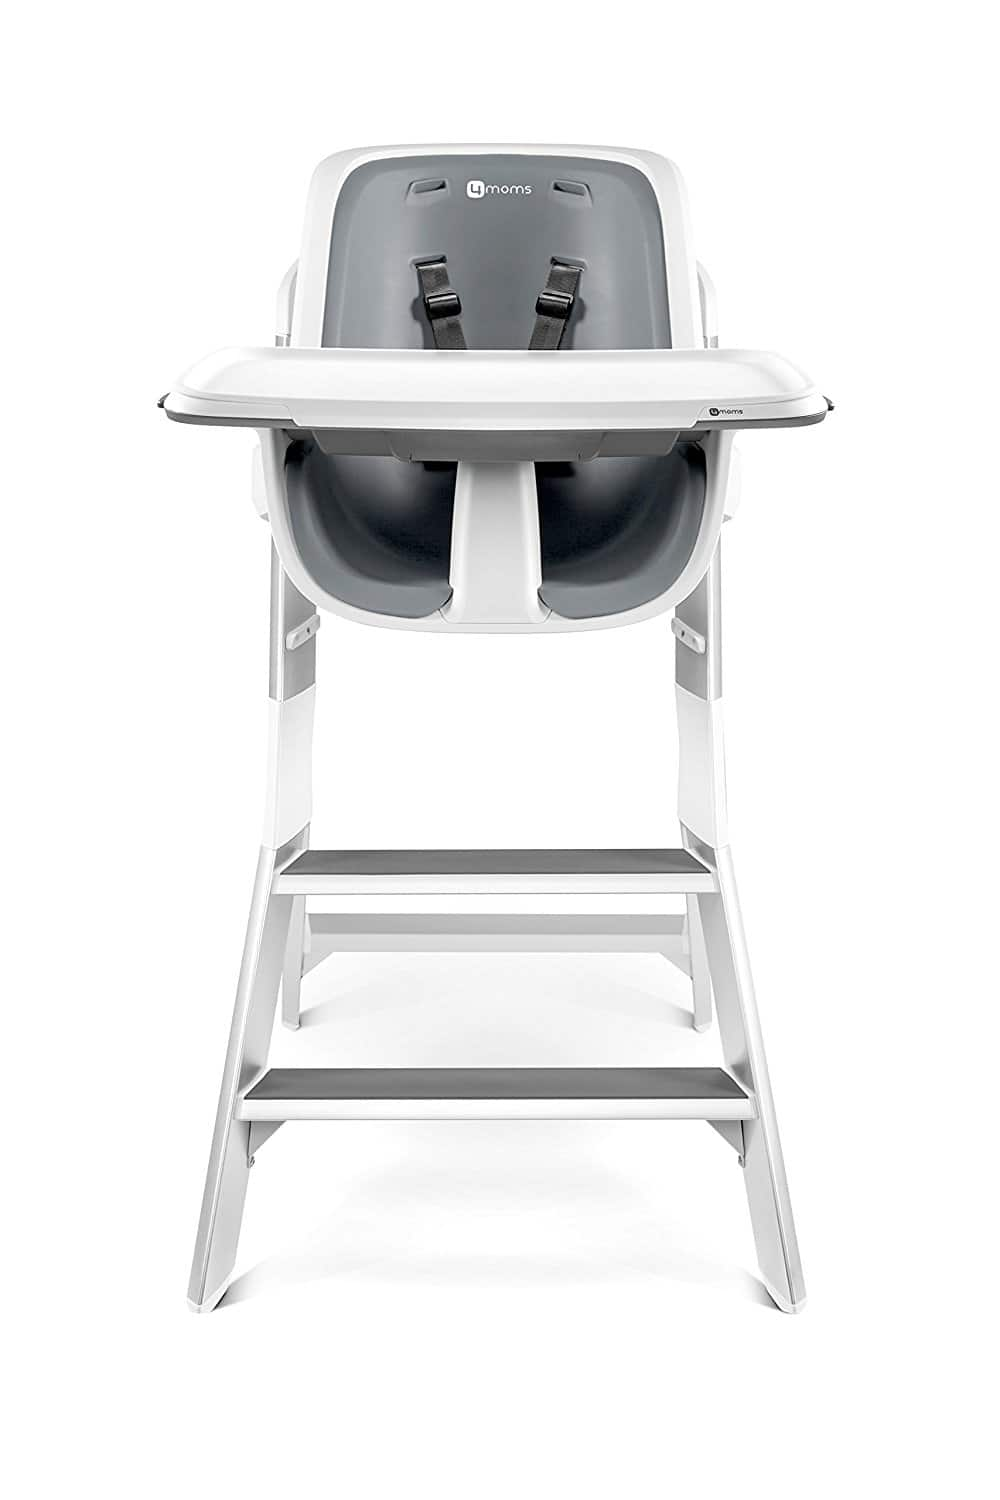 4moms high chair - easy to clean with magnetic, one-handed tray attachment $191.99 after 20% clipping coupon down from $299.99